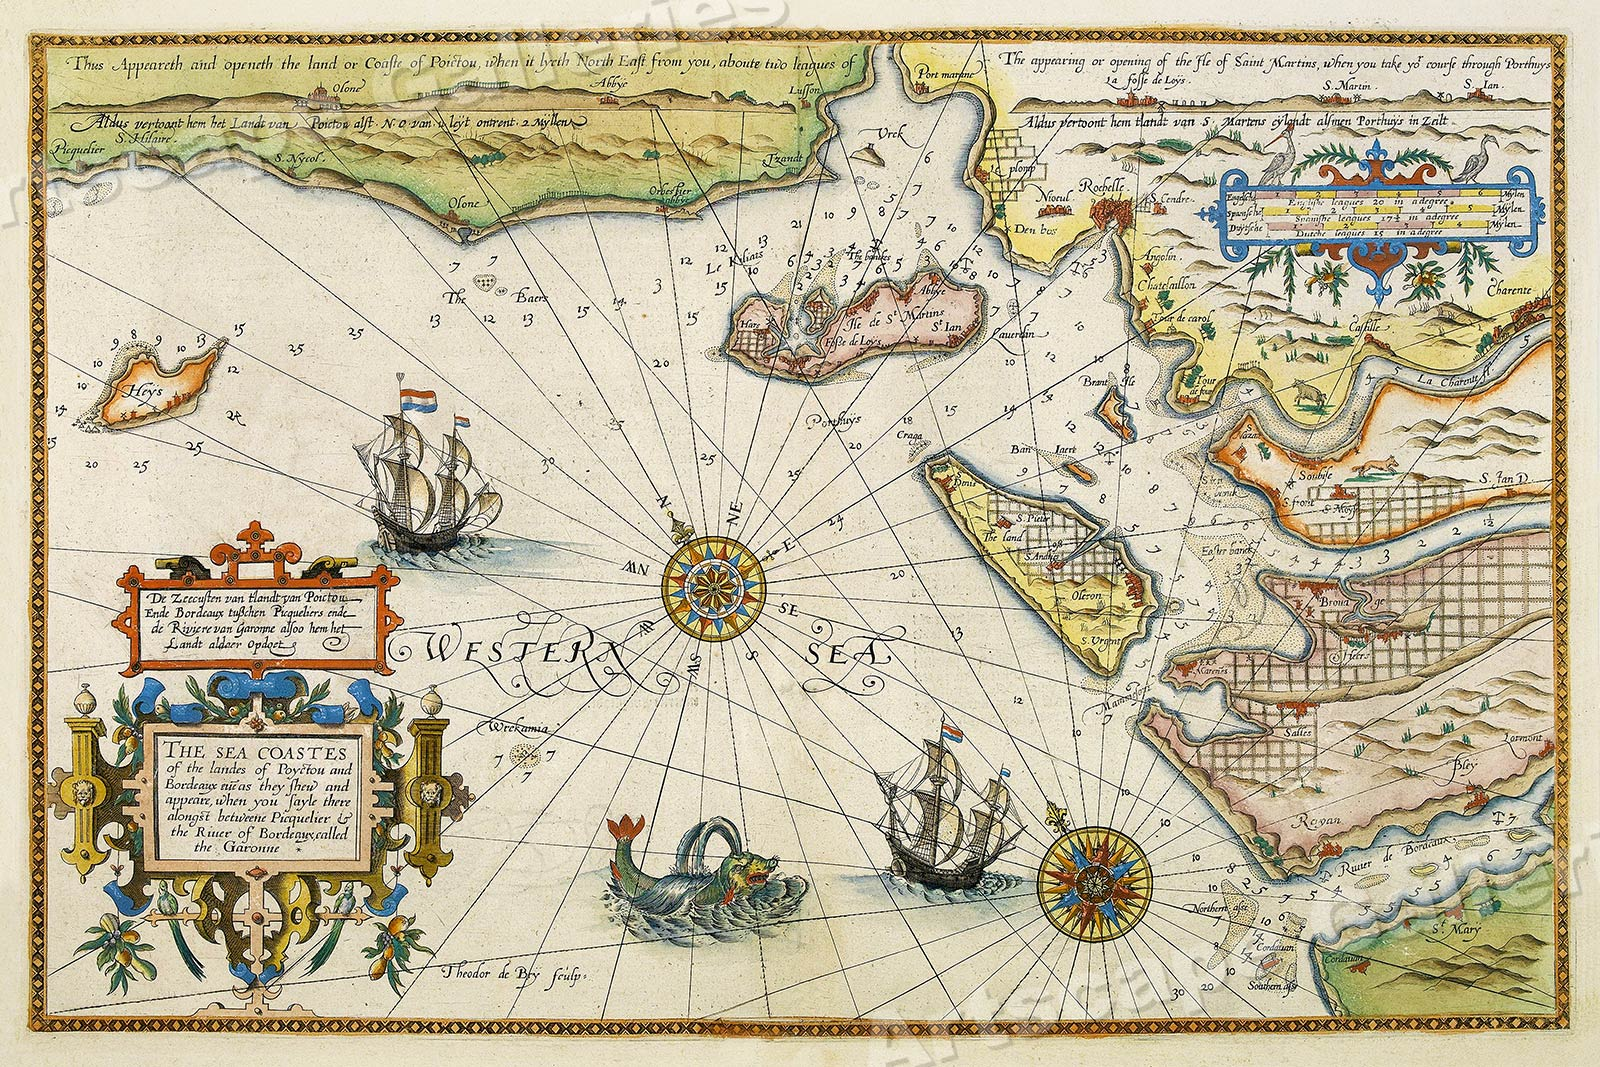 Map Of France Coast.Details About 1605 Sea Coast Of France Historic Vintage Style Wall Map 24x36